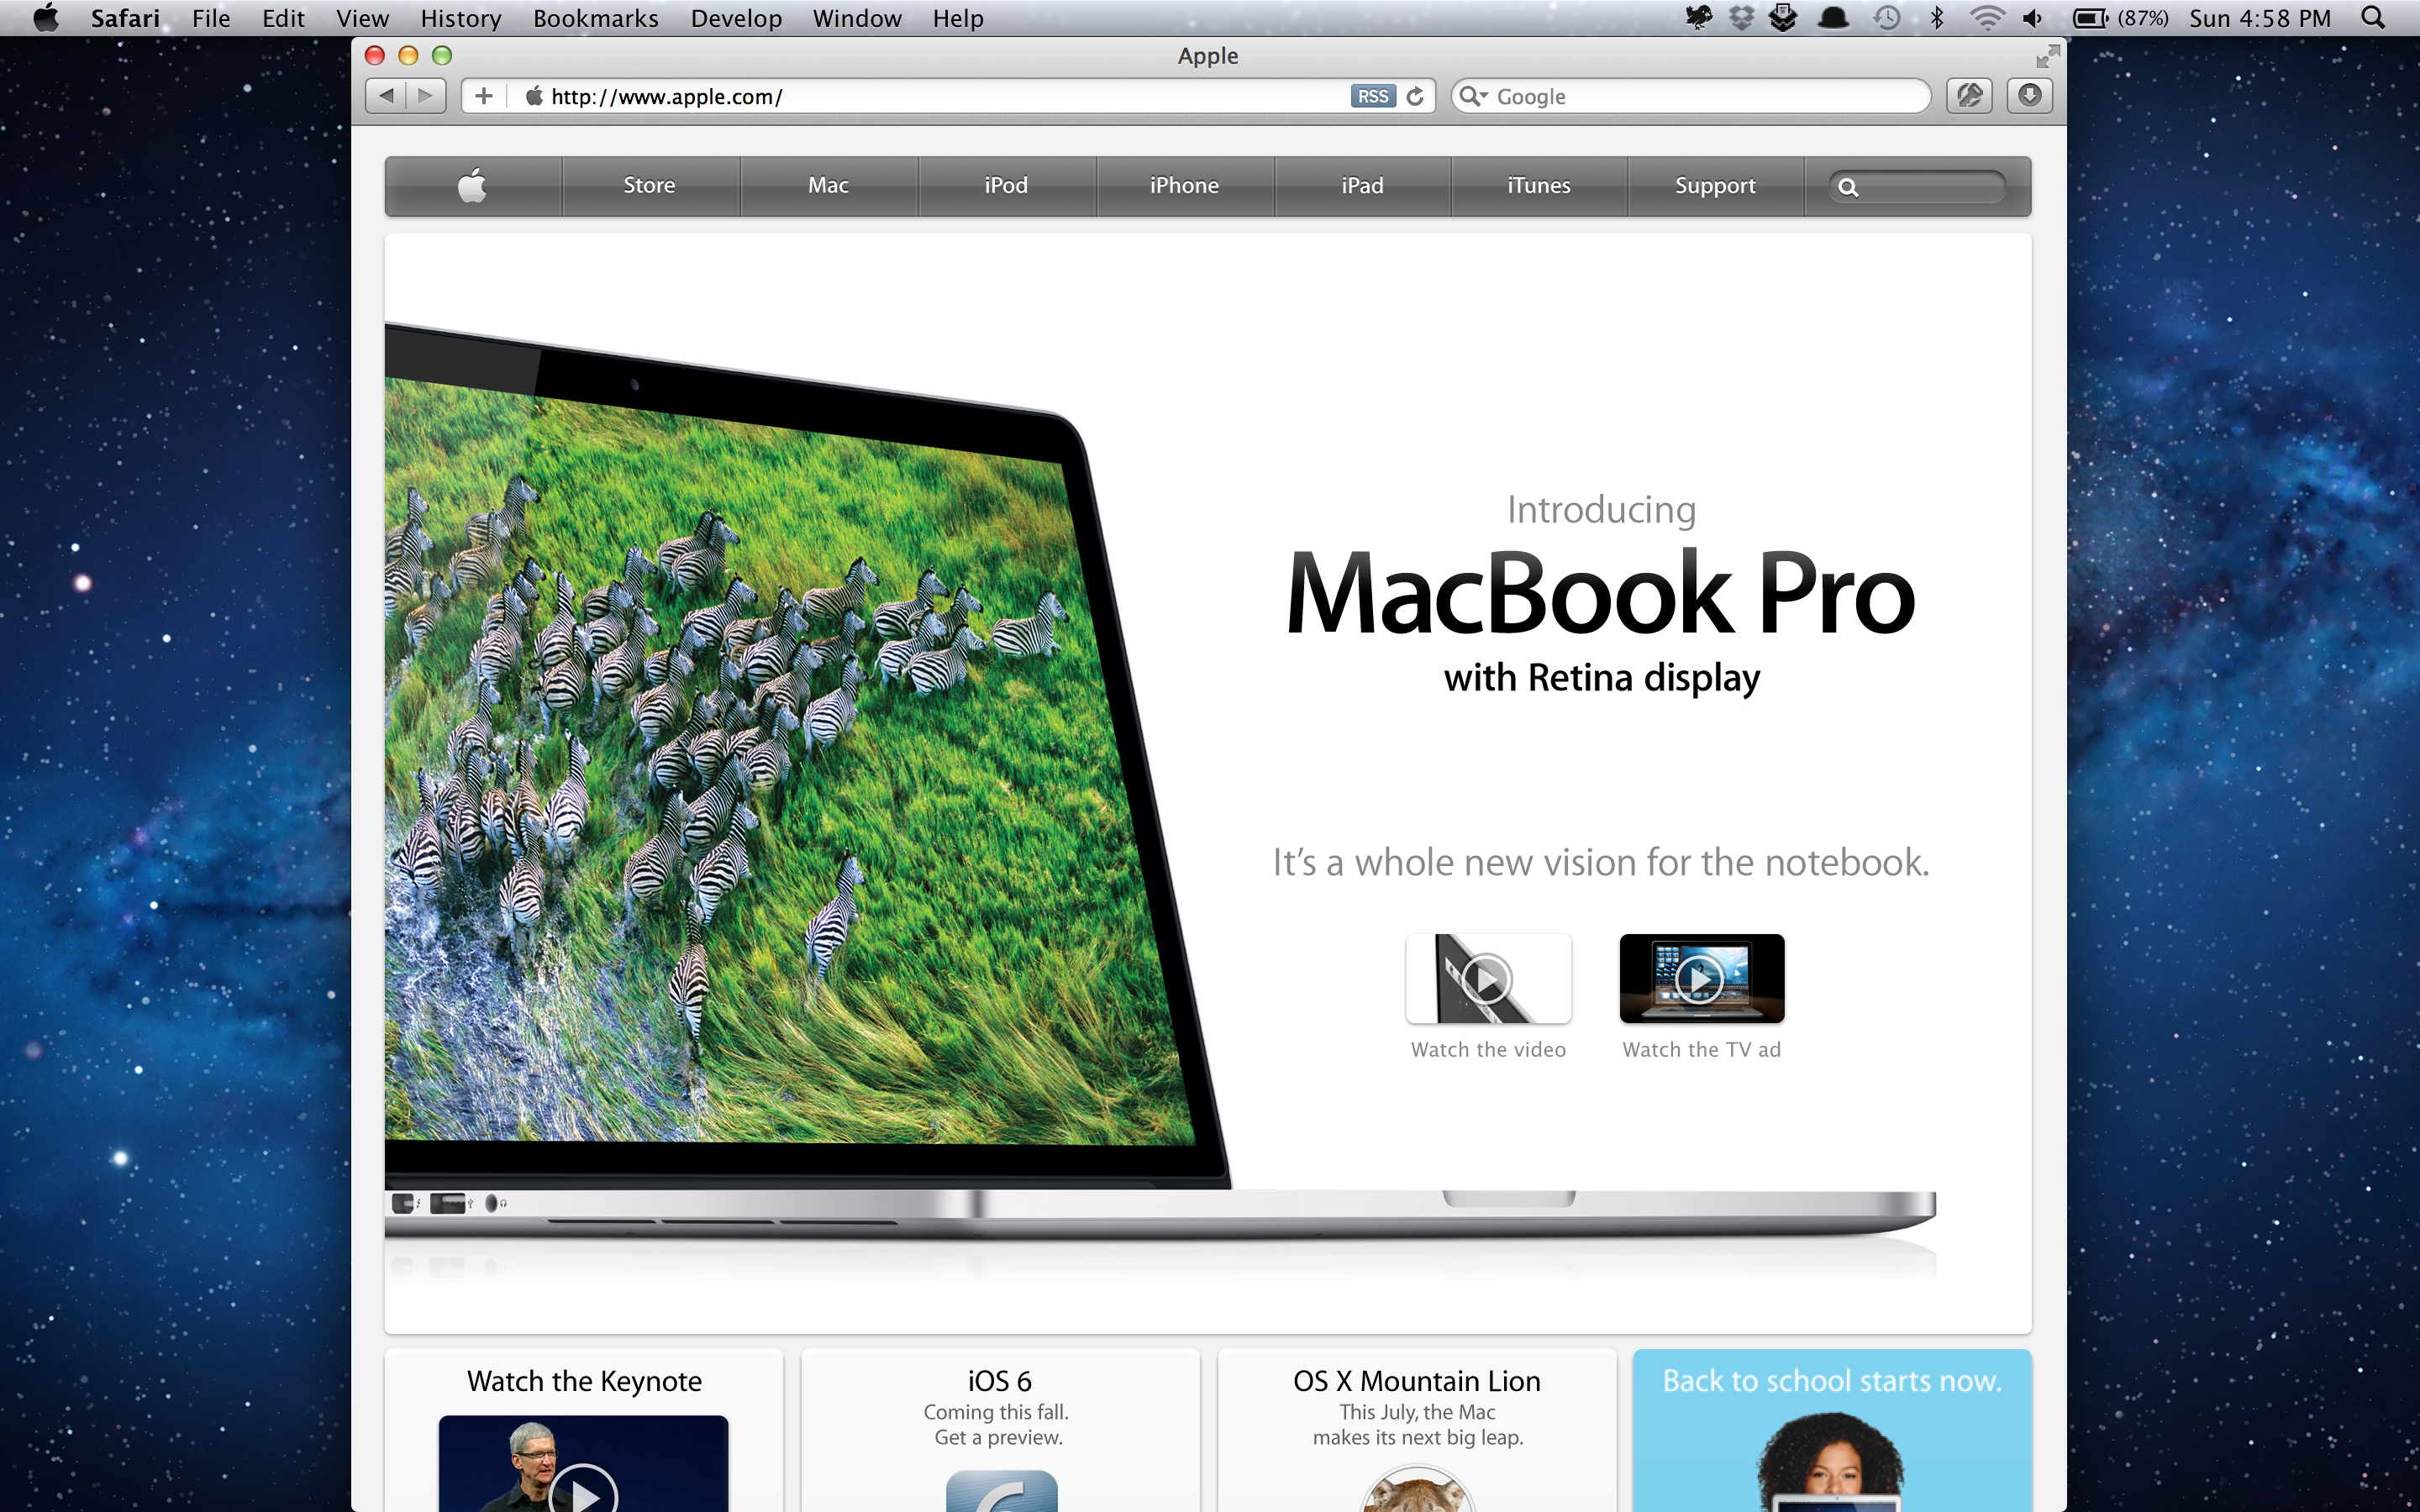 Stevestreza retina macbook pro review the age of the high but that process will probably take time right now safari is the only shipped browser which supports retina graphics though the google chrome canary ccuart Images